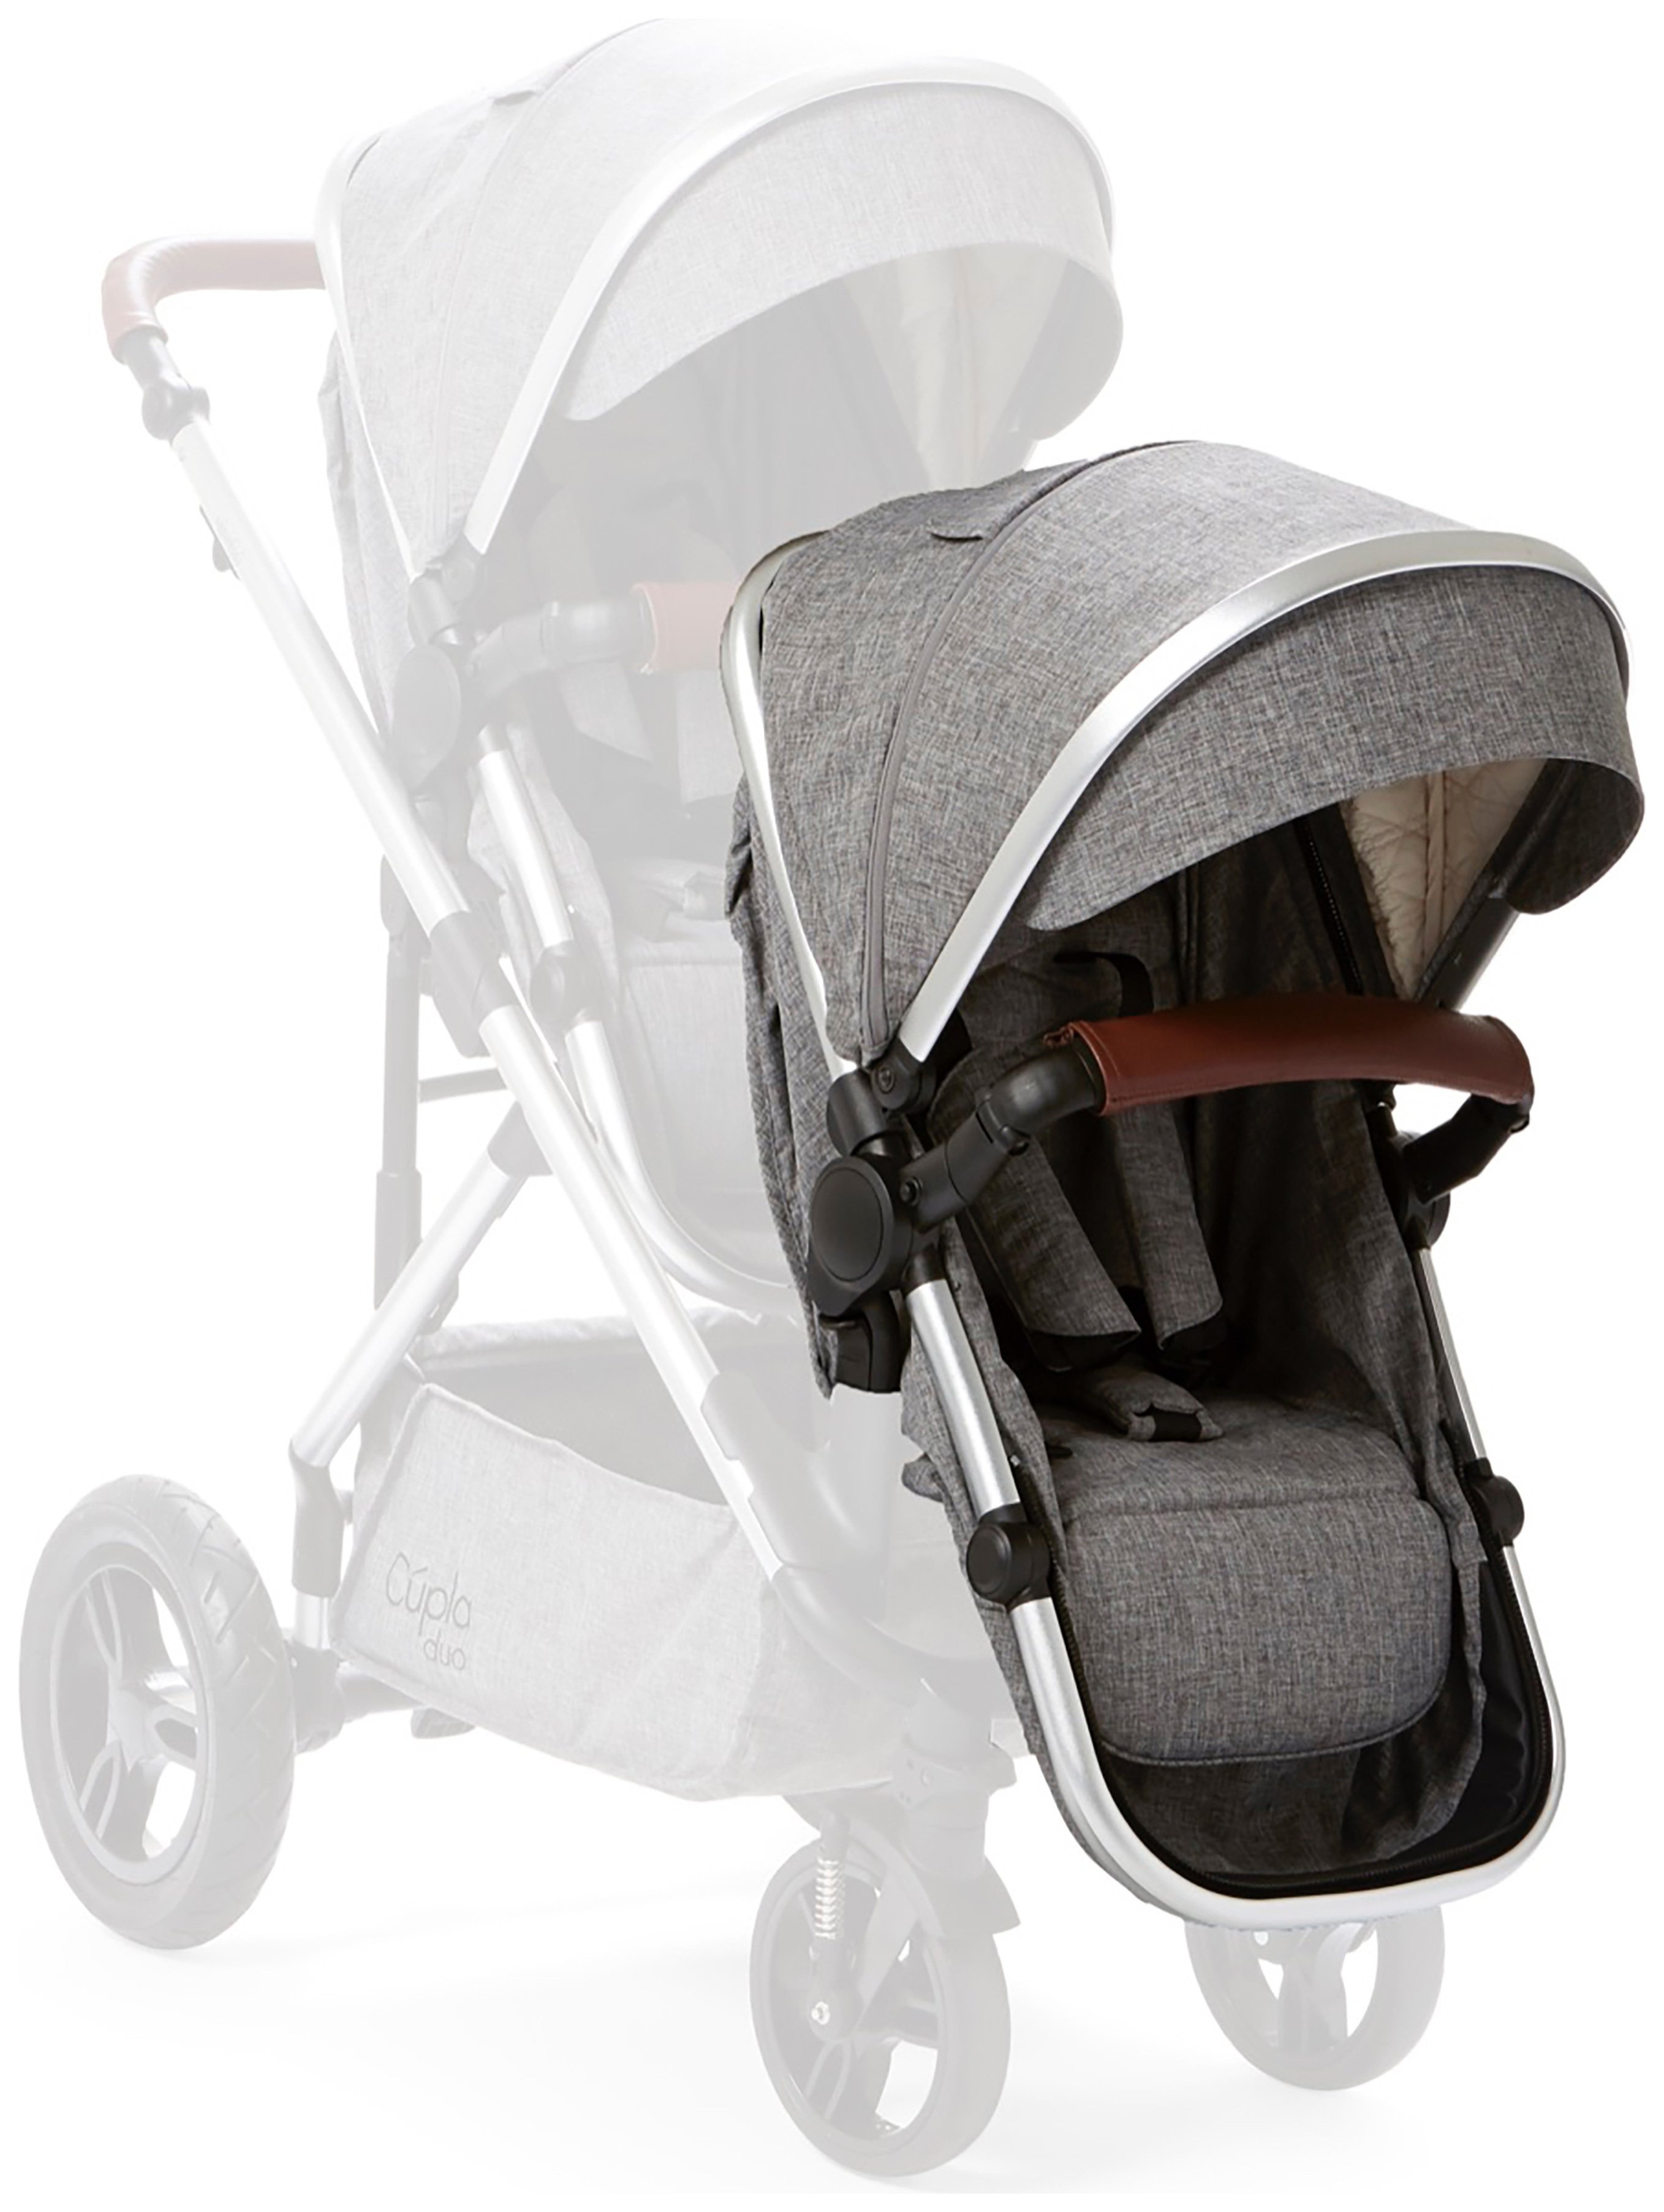 Image of Cupla Duo Second Seat & Front Adapter - Grey